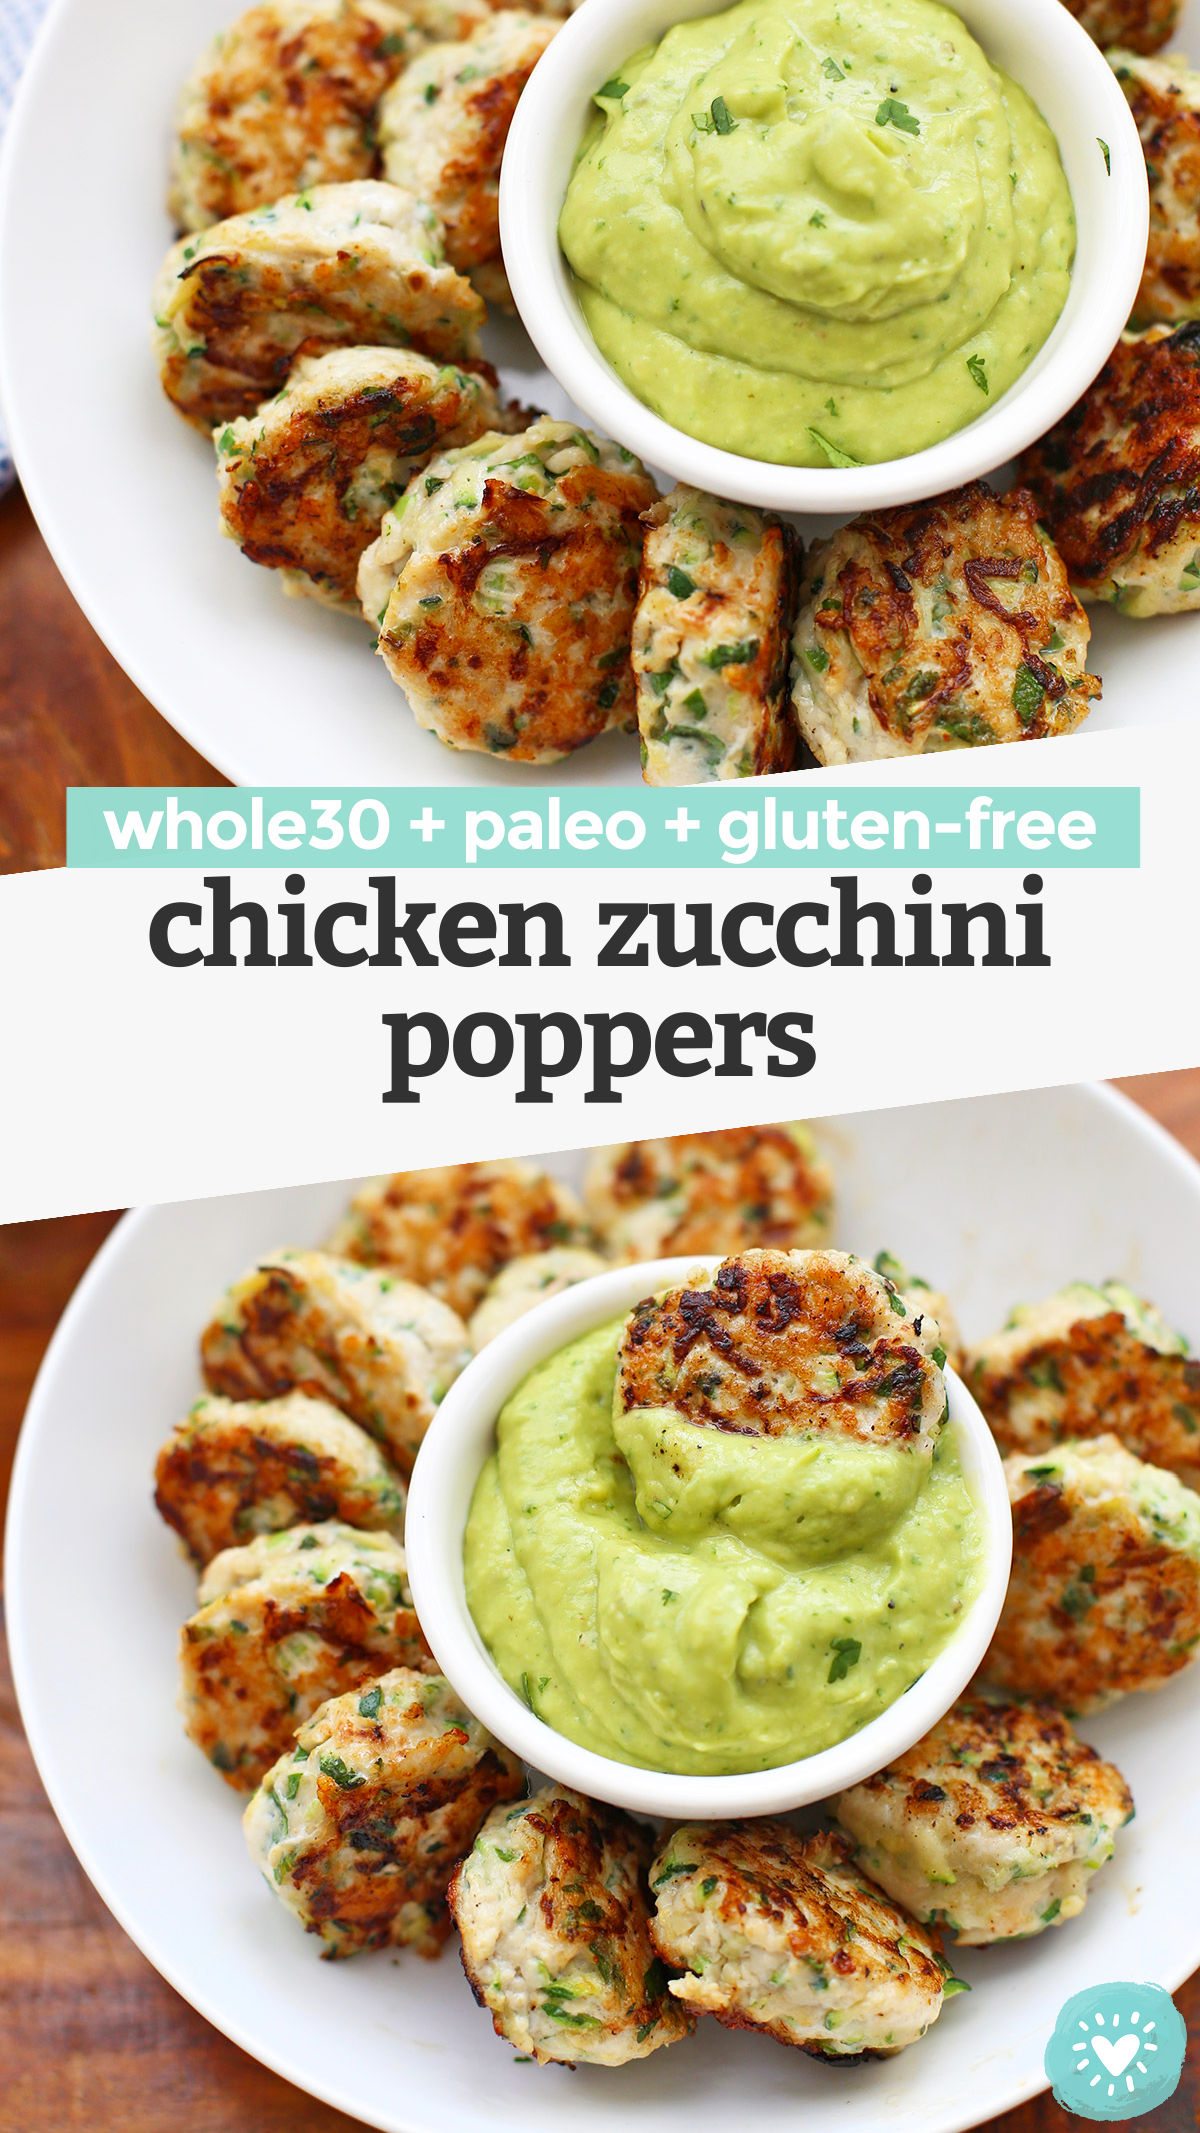 Paleo & Whole30 Chicken Zucchini Poppers - These chicken zucchini meatballs are so easy and delicious! Perfect for meal prep and clean eating! // keto meatballs // paleo meatballs // chicken meatballs // paleo appetizer // paleo meal prep// meal prep lunch // meal prep recipe // #whole30 #keto #paleo #cleaneating #mealprep #chicken #meatballs #appetizer #chickenzucchinipoppers #poppers #lowcarb